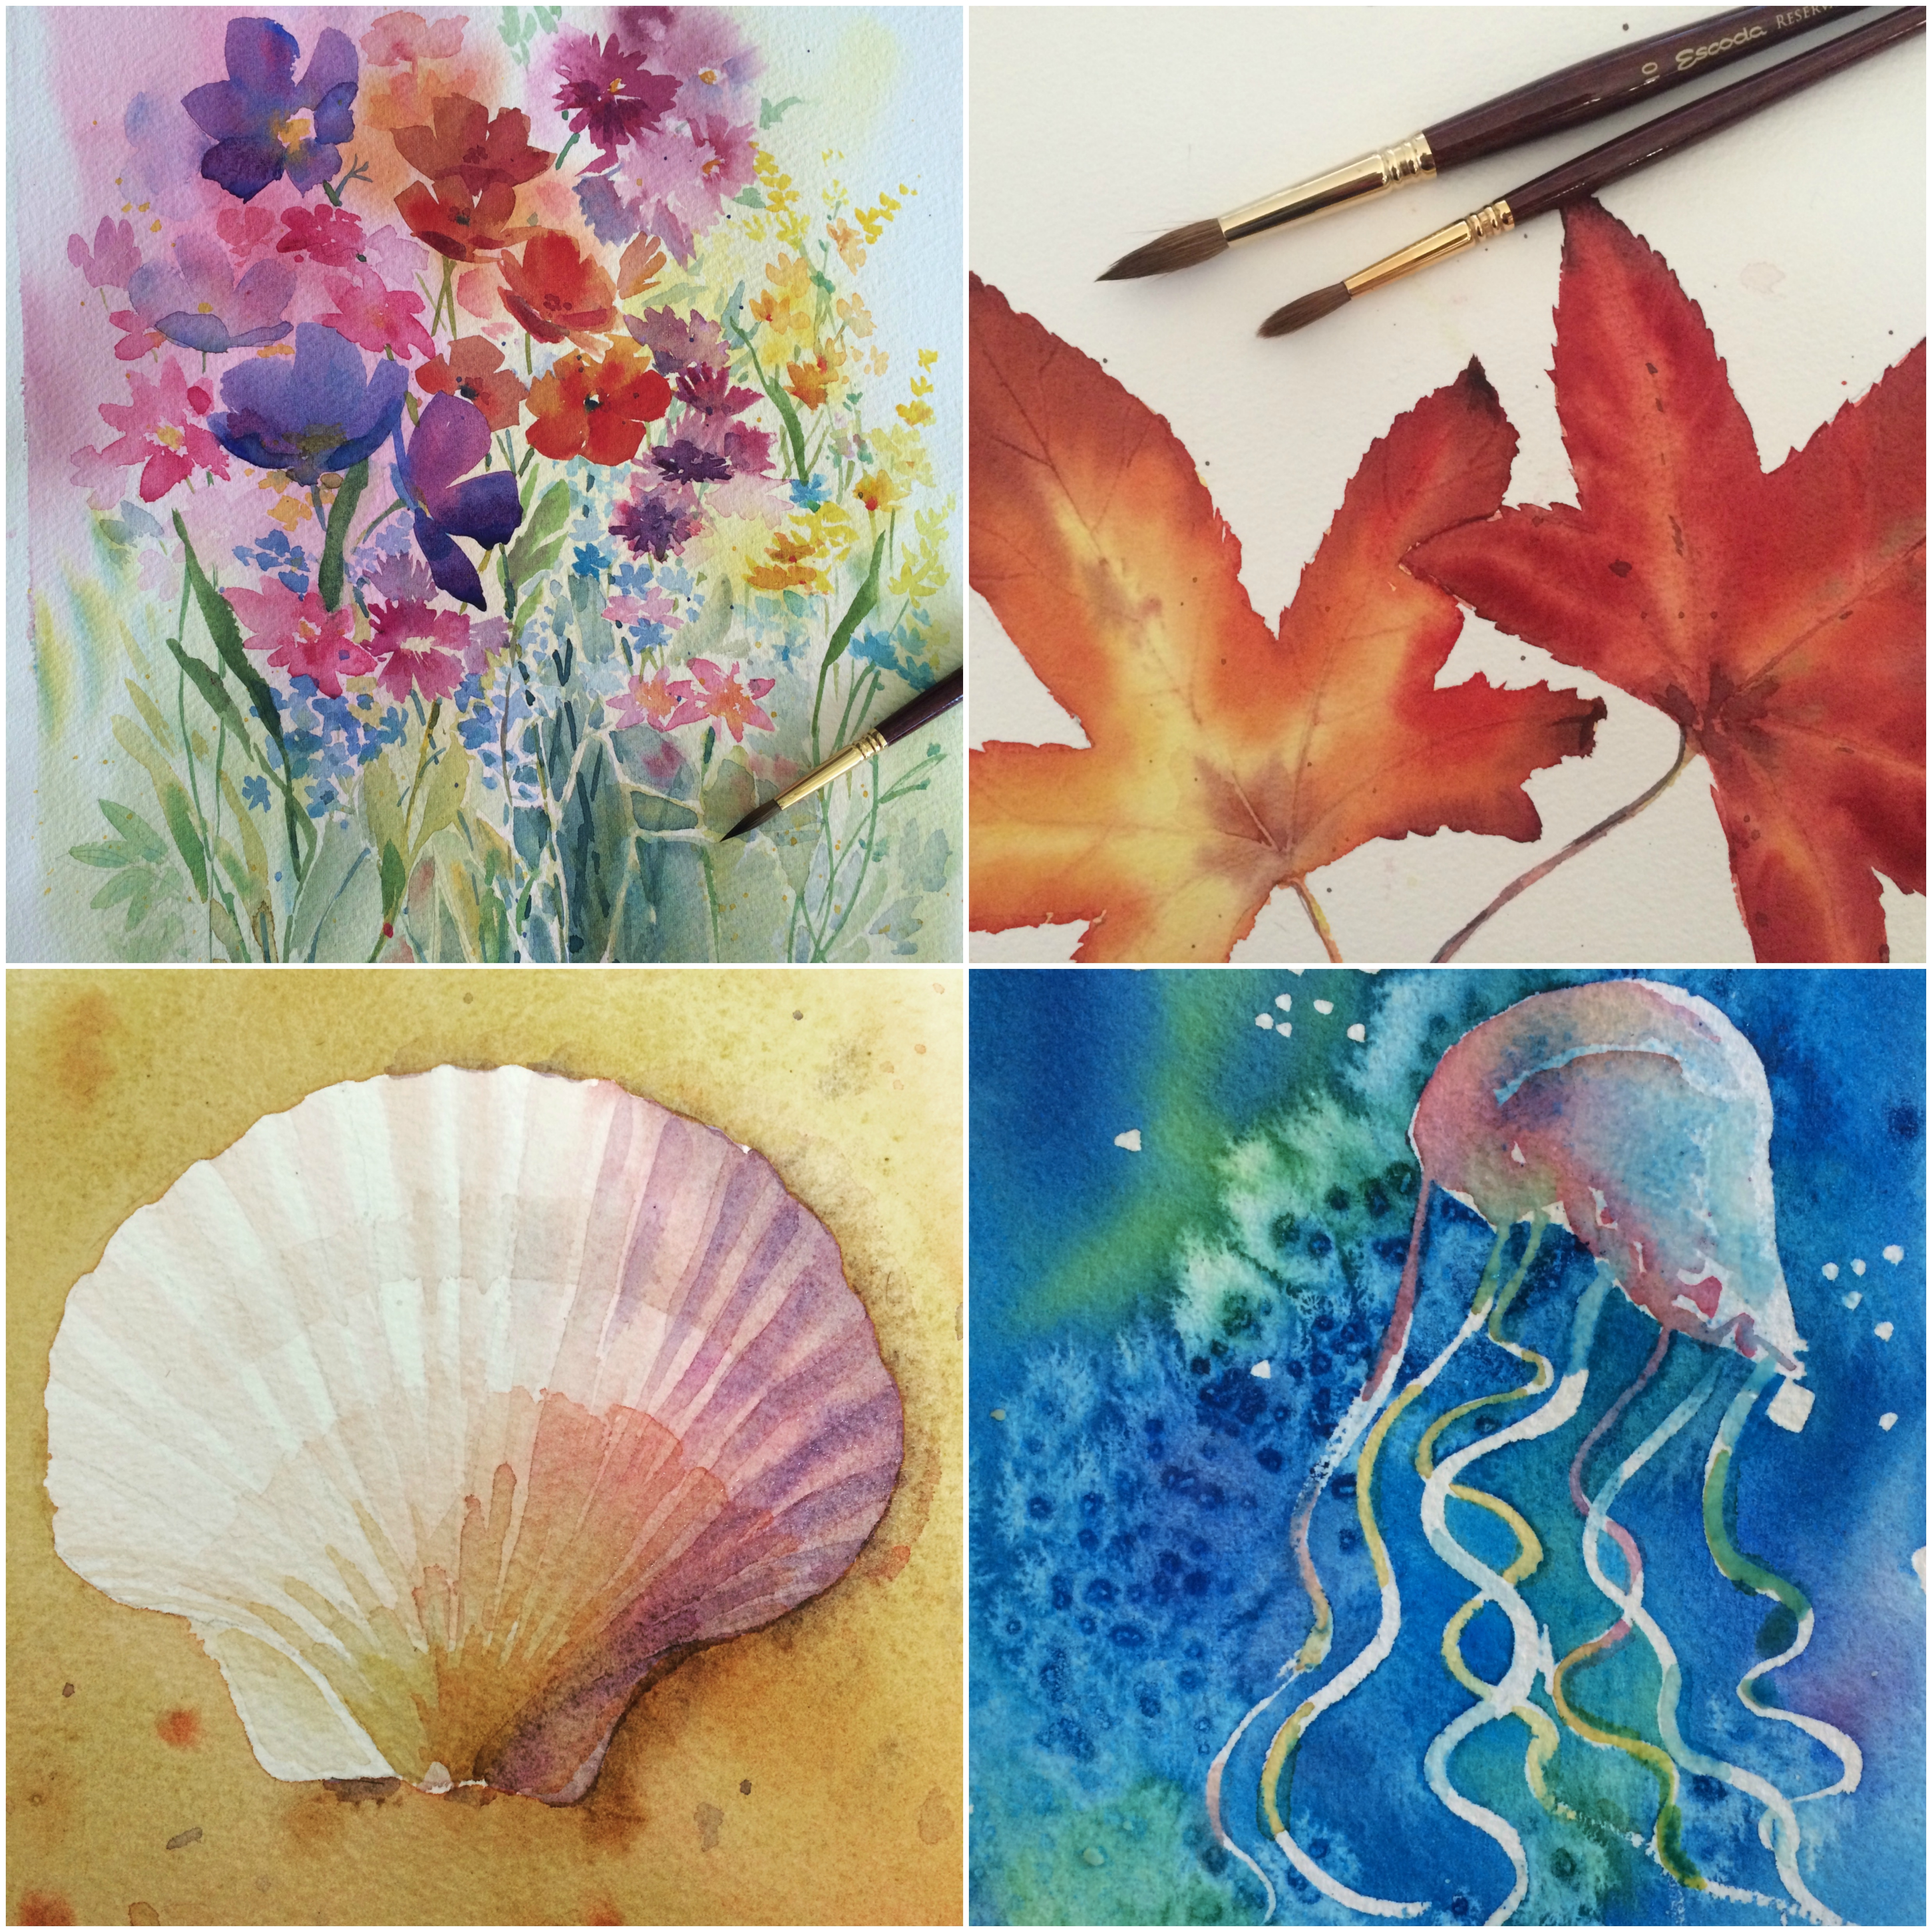 Online Watercolor course and classes teaching absolute beginners to intermediate students how to paint in watercolour.